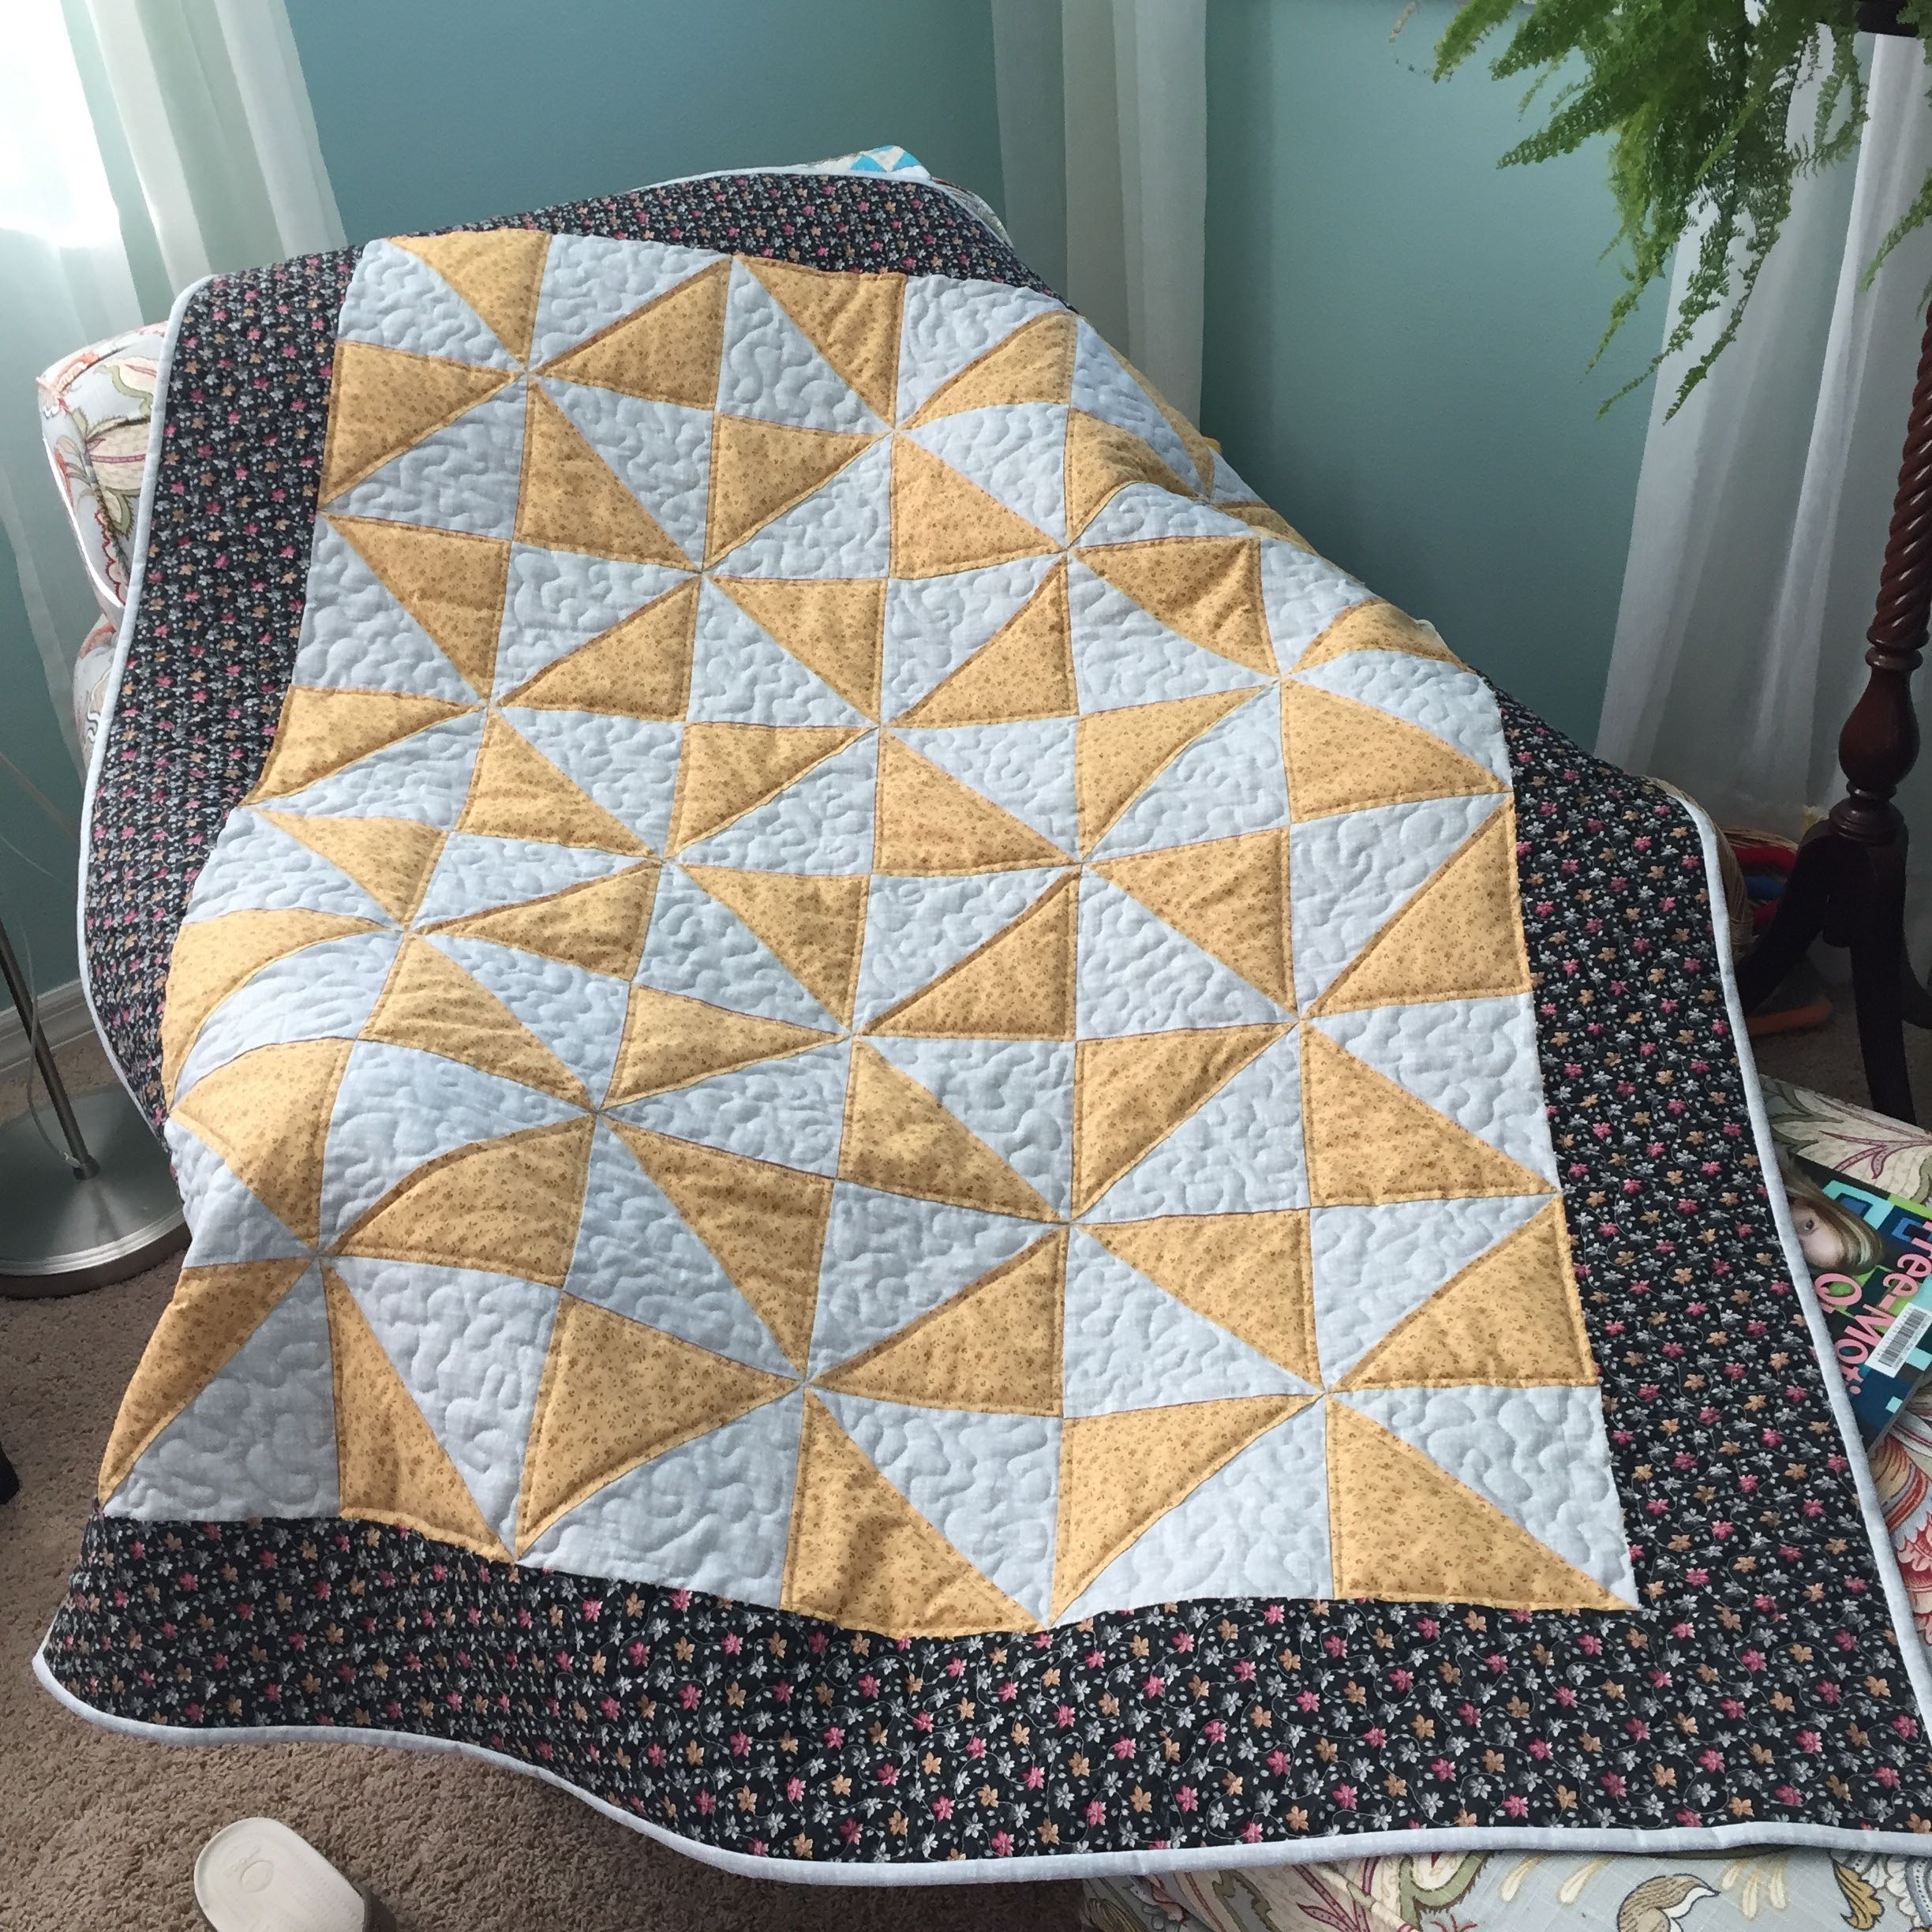 Name:  charity quilt front.jpg Views: 3330 Size:  980.6 KB